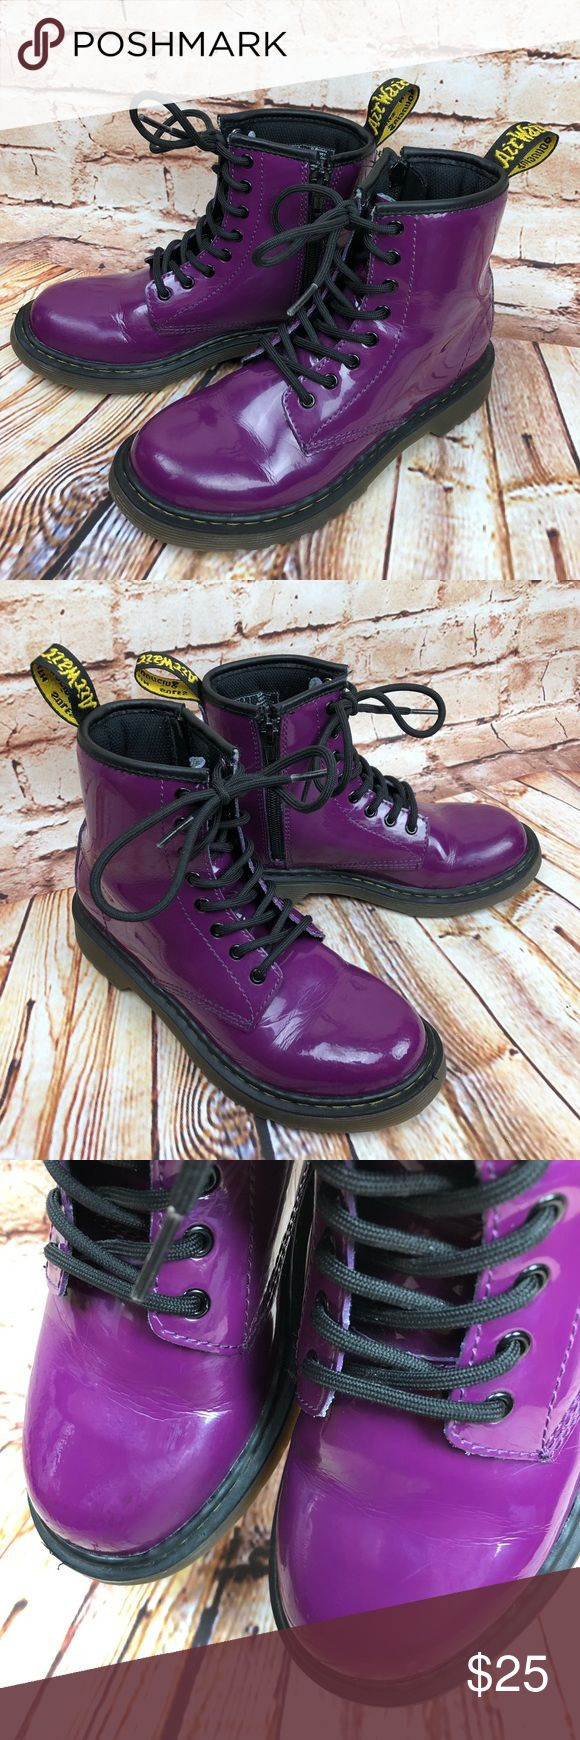 Doc Martens Delaney Patent Leather Boots AirWair These boots are in very good, lightly worn condition. US Size 2 * EU 33 * UK 1 Minor scuffs, scratches and marks from wear. Please see pics for more details (: Dr. Martens Shoes Boots